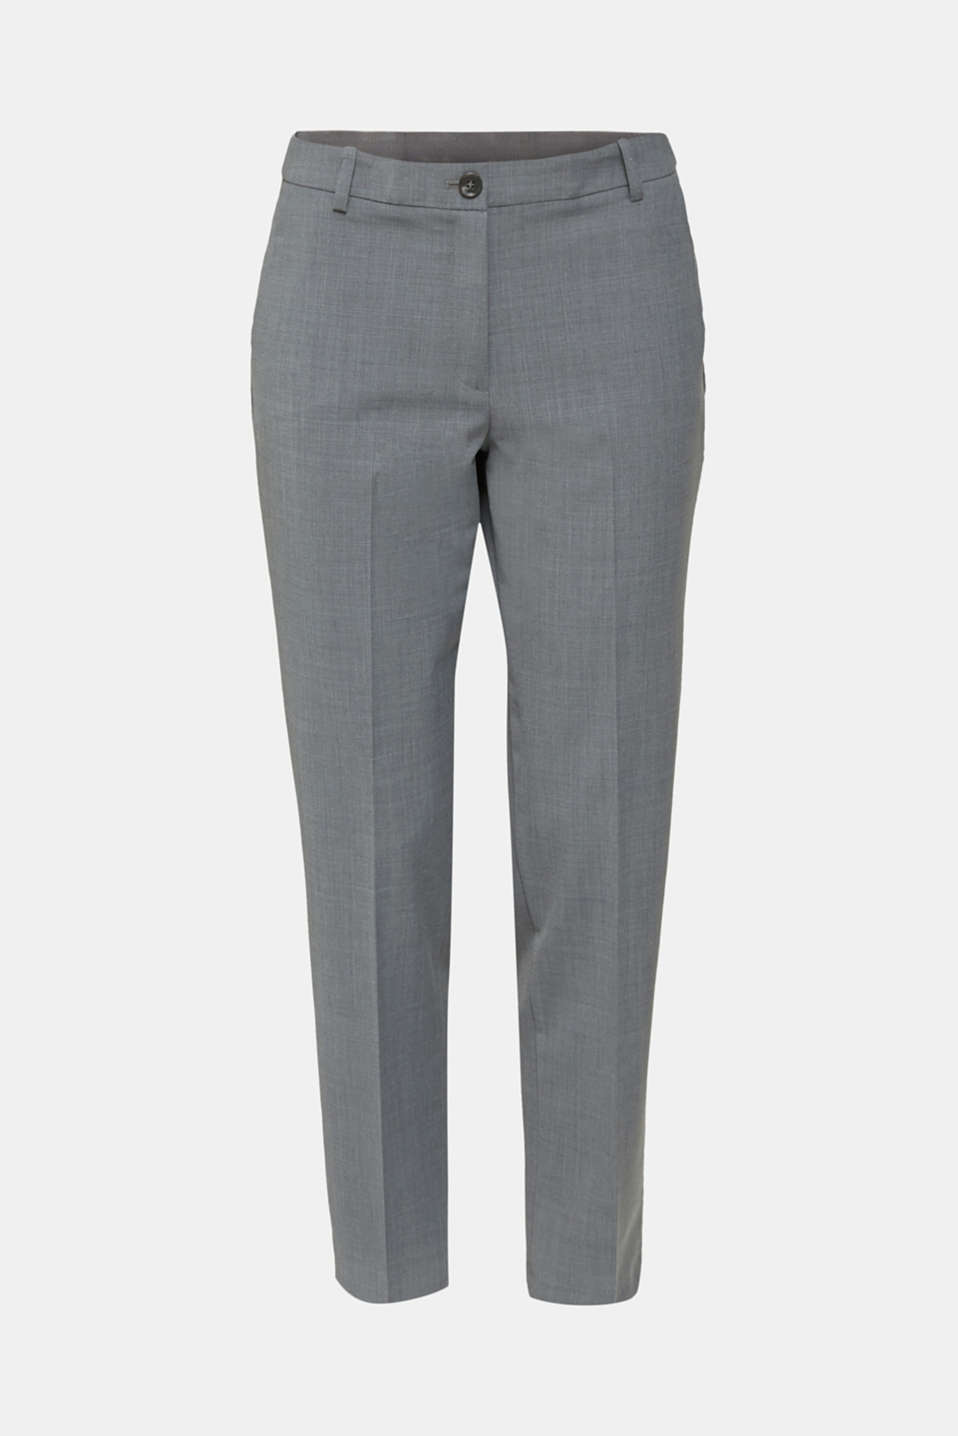 With wool: ACTIVE Mix + Match stretch trousers, GREY 5, detail image number 5